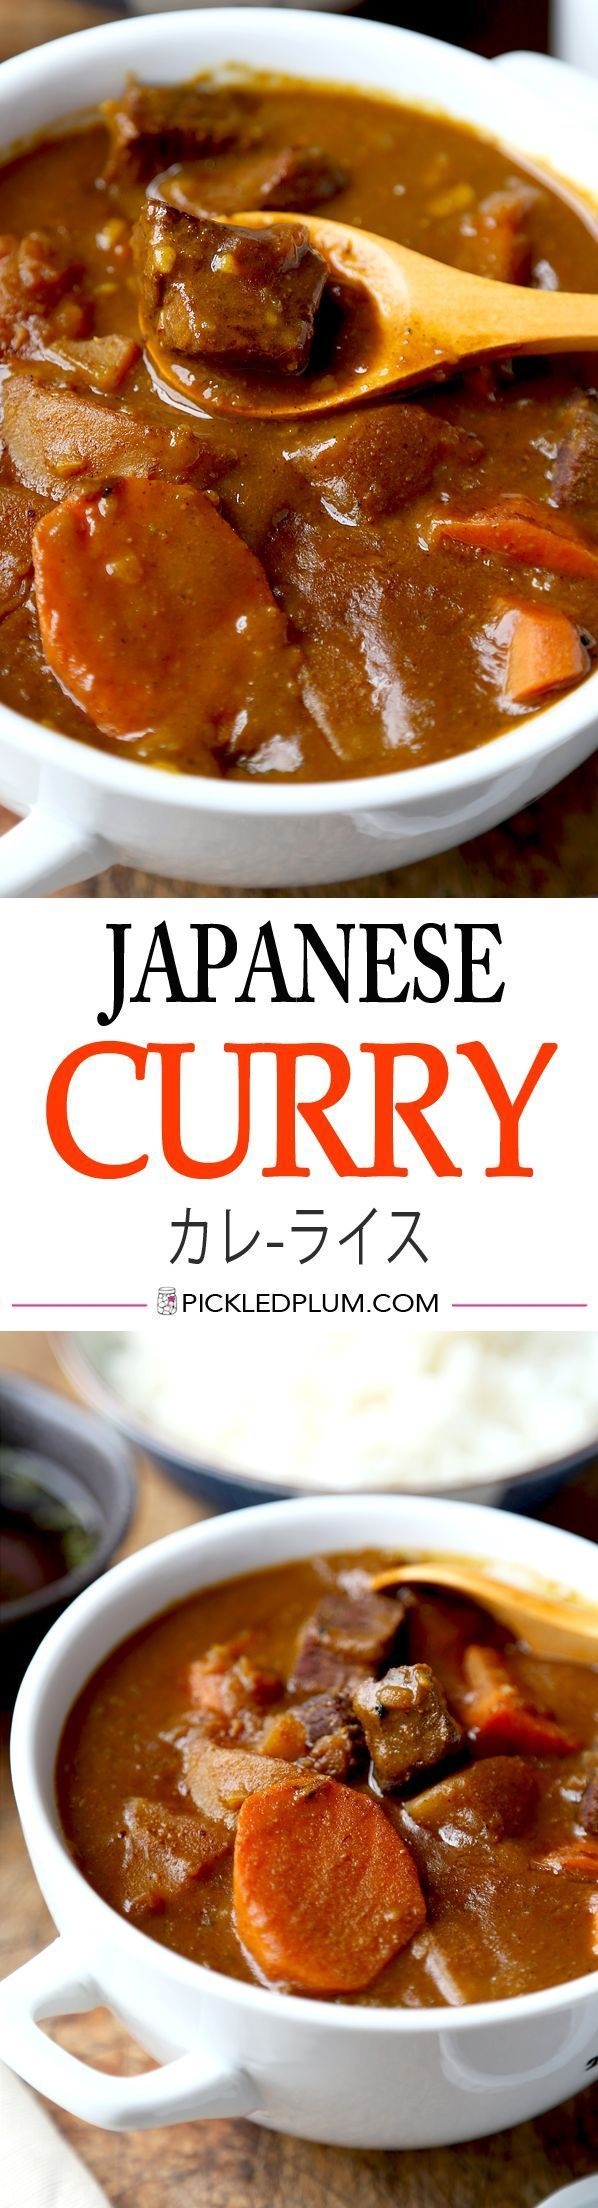 3409 best a japanese food images on pinterest asian recipes japanese curry recipe mild and a little sweet this is unctuous and delicious beef forumfinder Choice Image